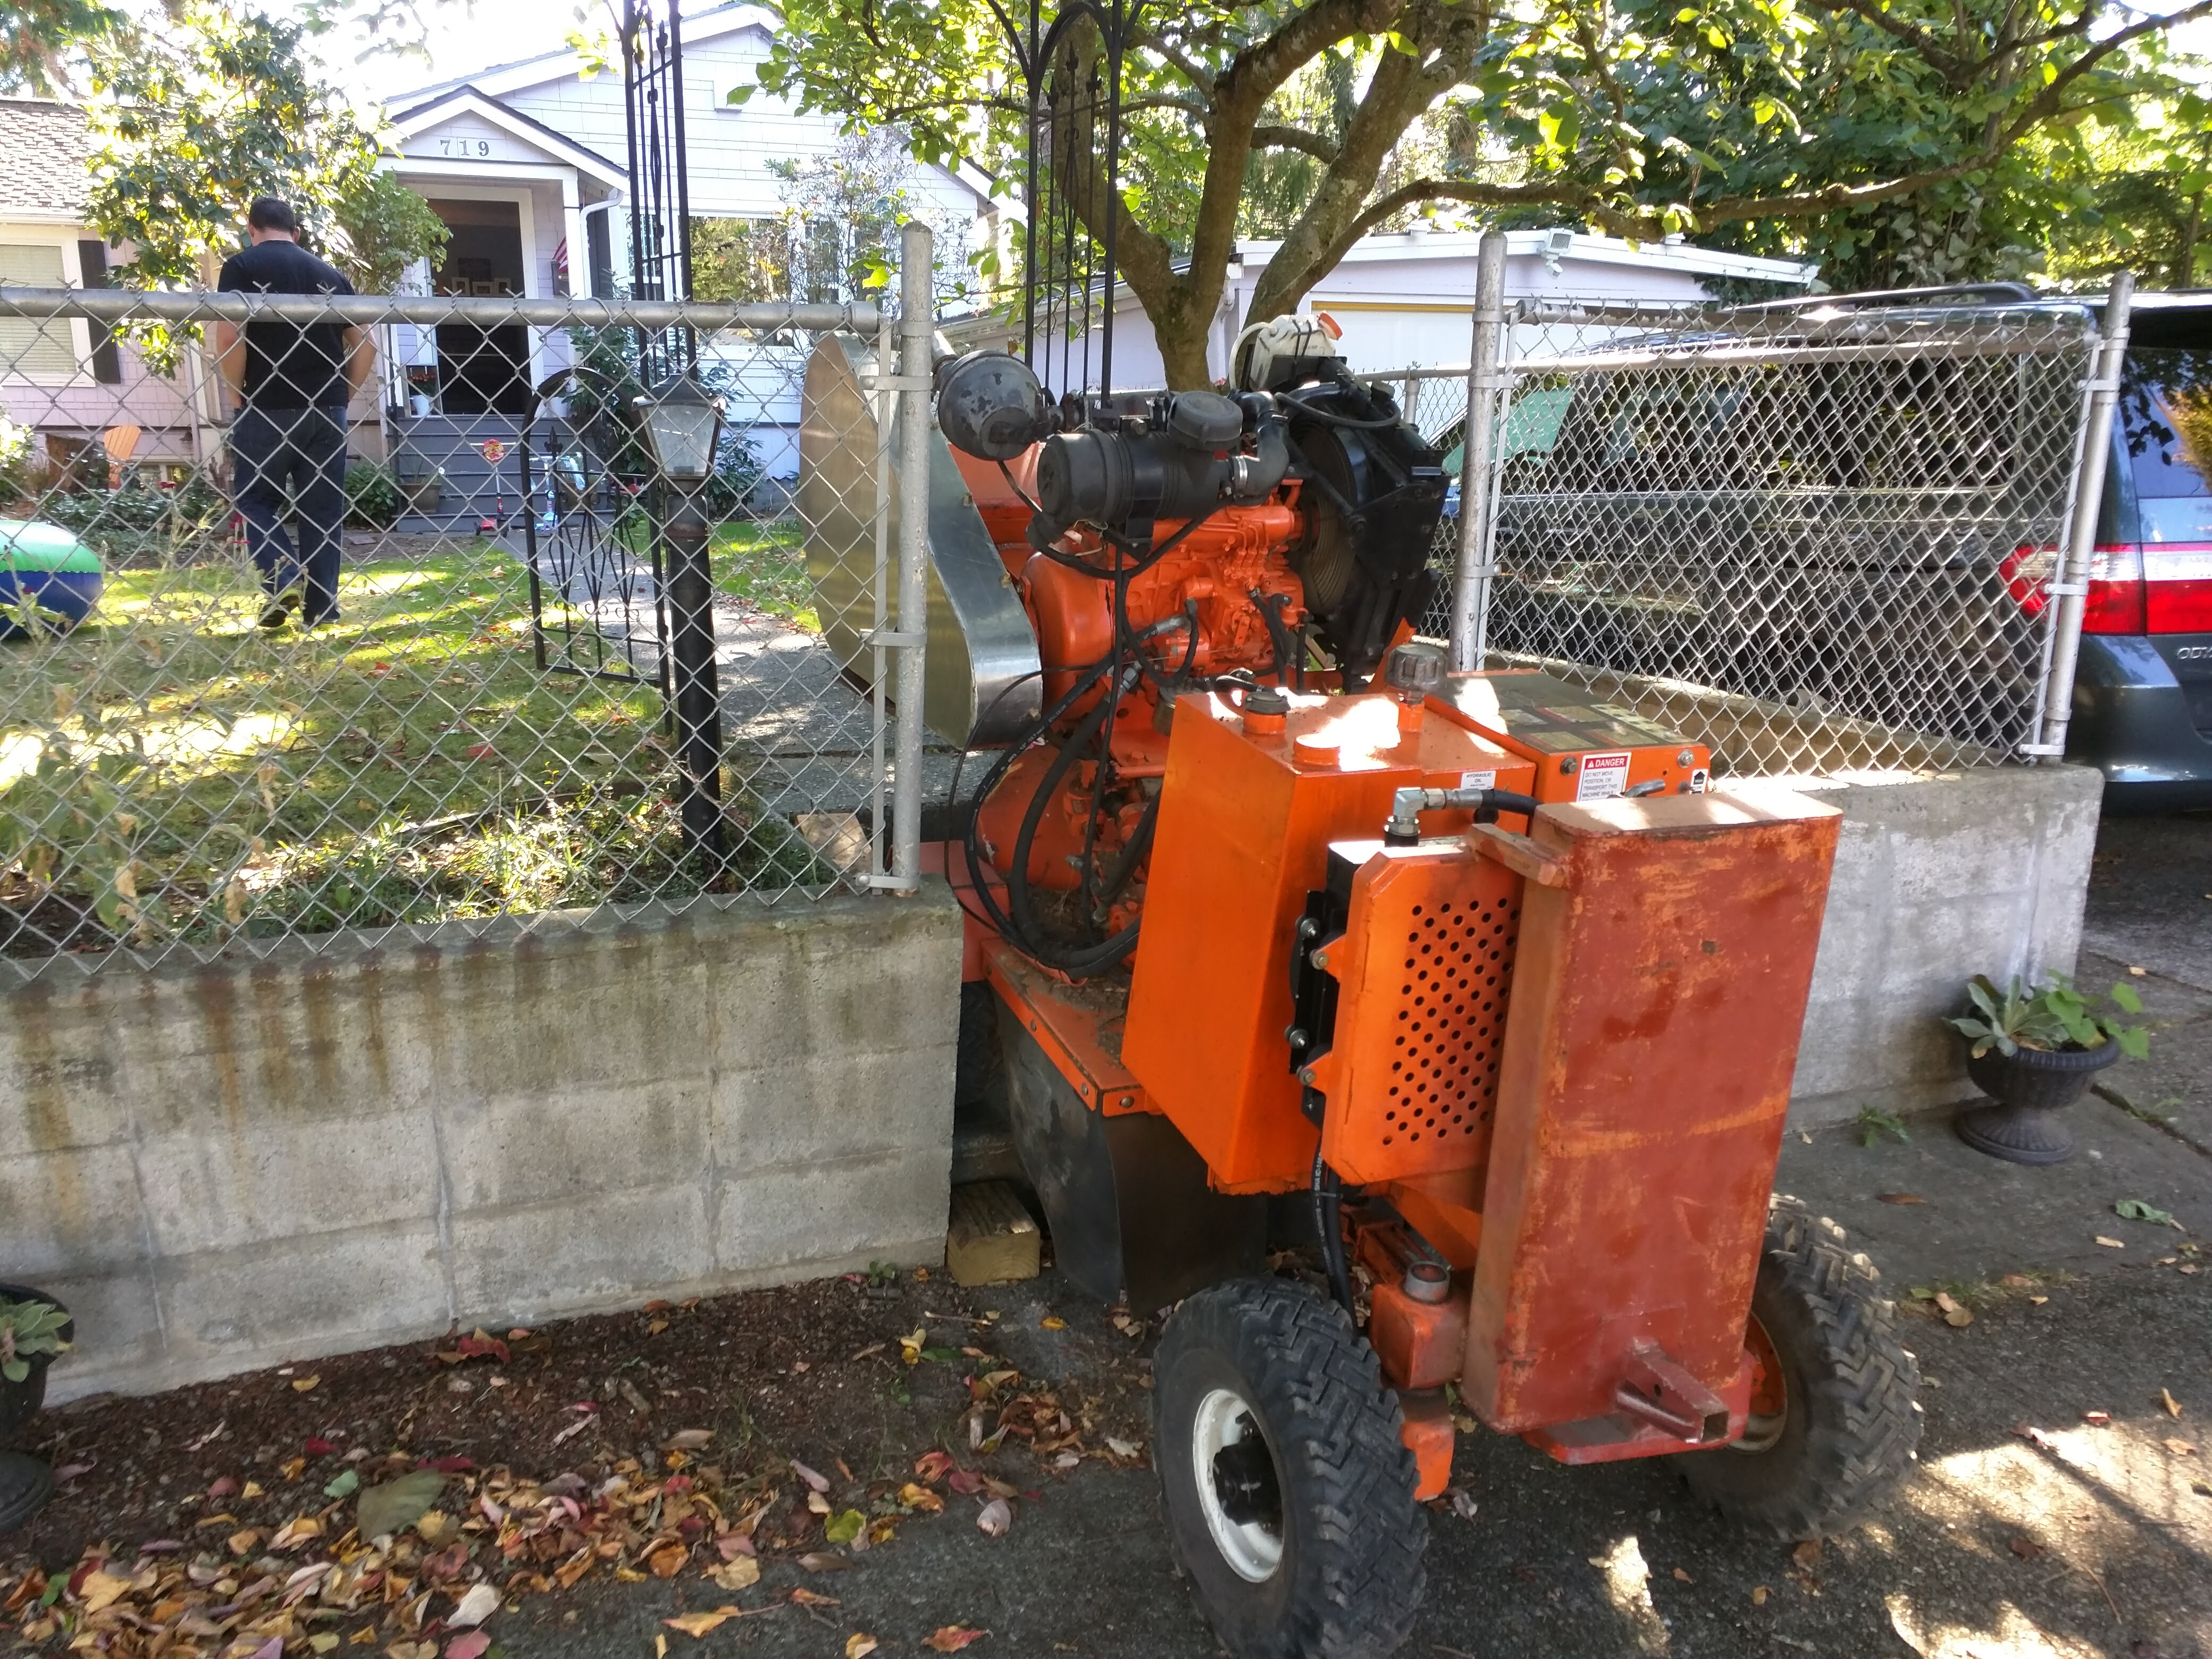 Diy do it yourself stump removal tips grinding burning stumps img20151004142734 solutioingenieria Image collections